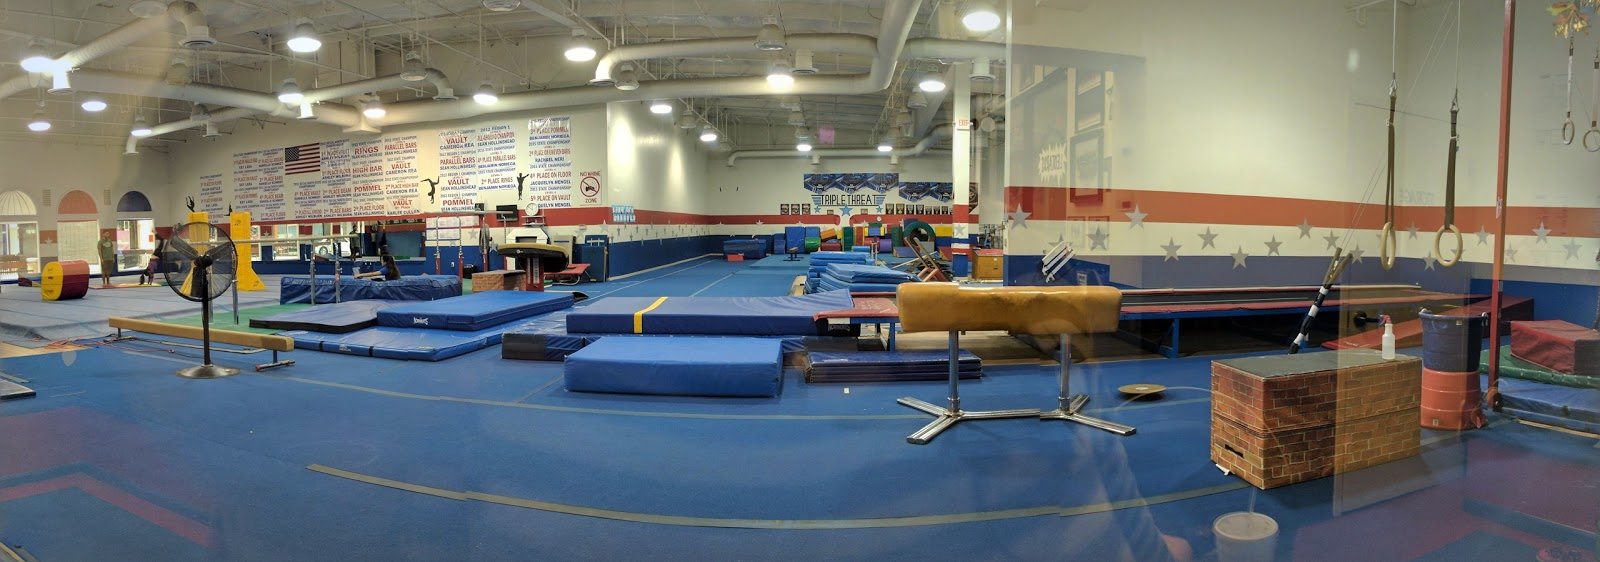 K T's All Star Gymnastic Center - photo